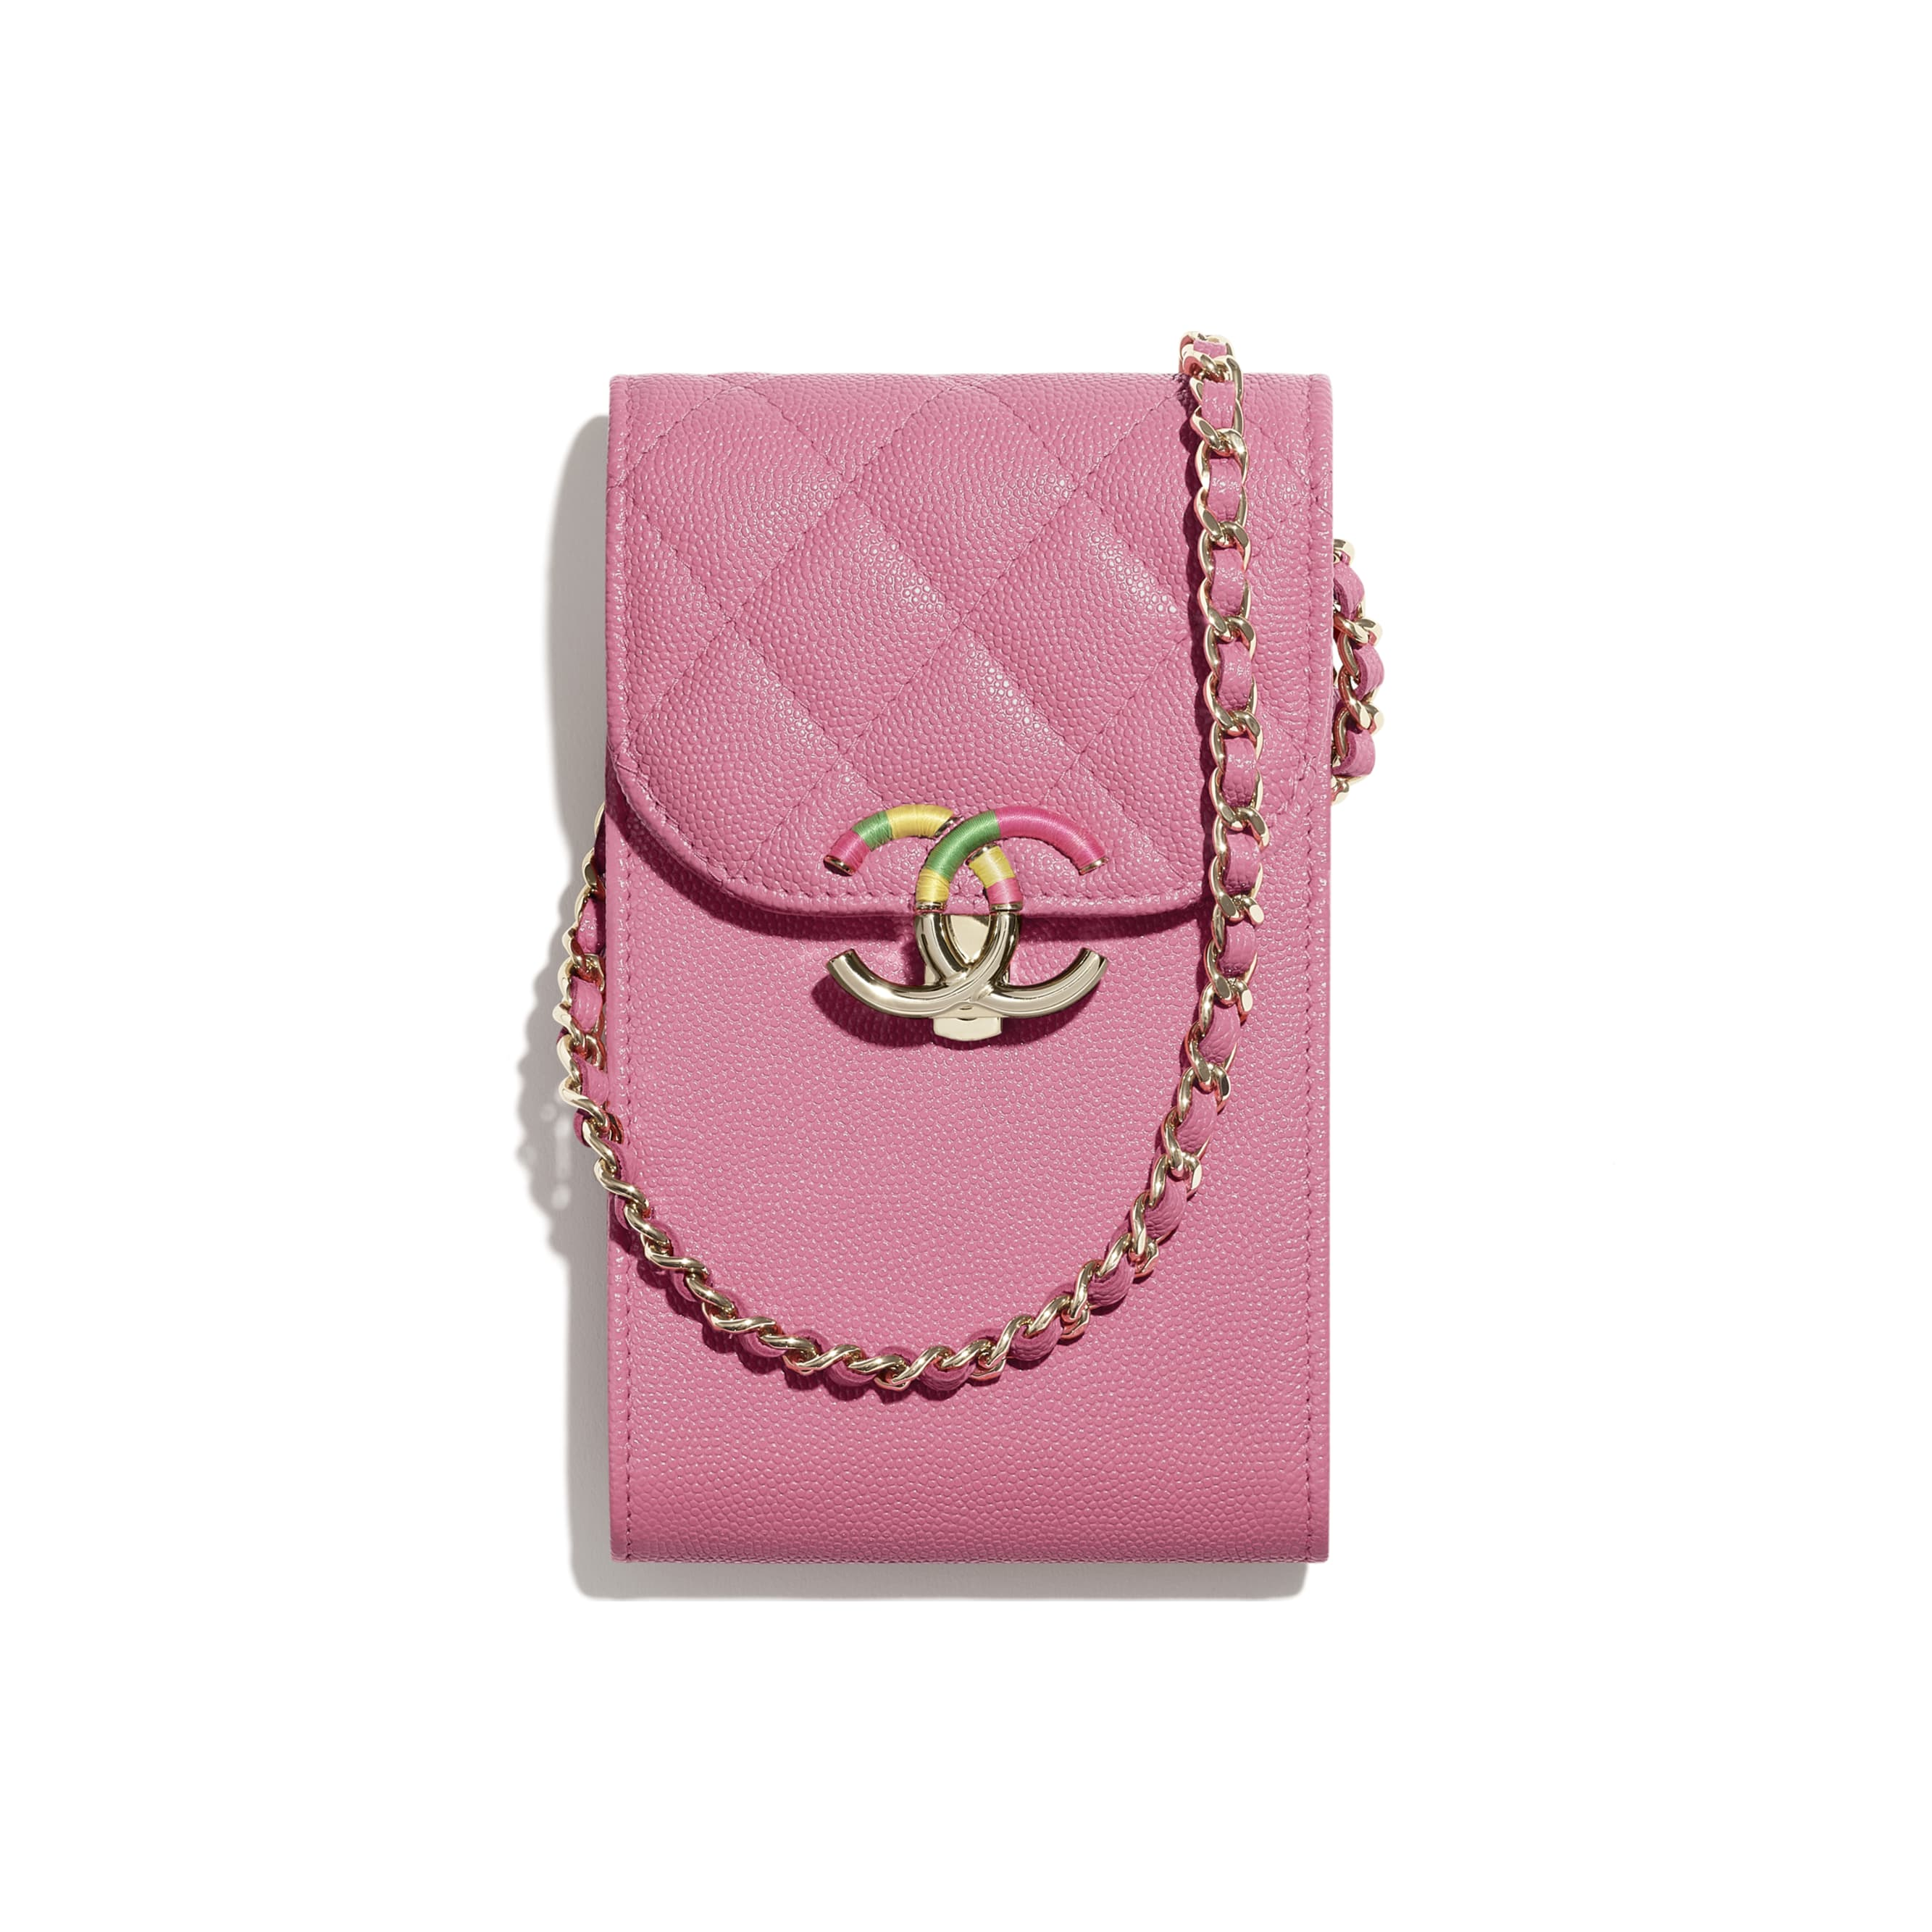 Phone Holder with Chain - Pink - Grained Calfskin & Gold-Tone Metal - CHANEL - Default view - see standard sized version